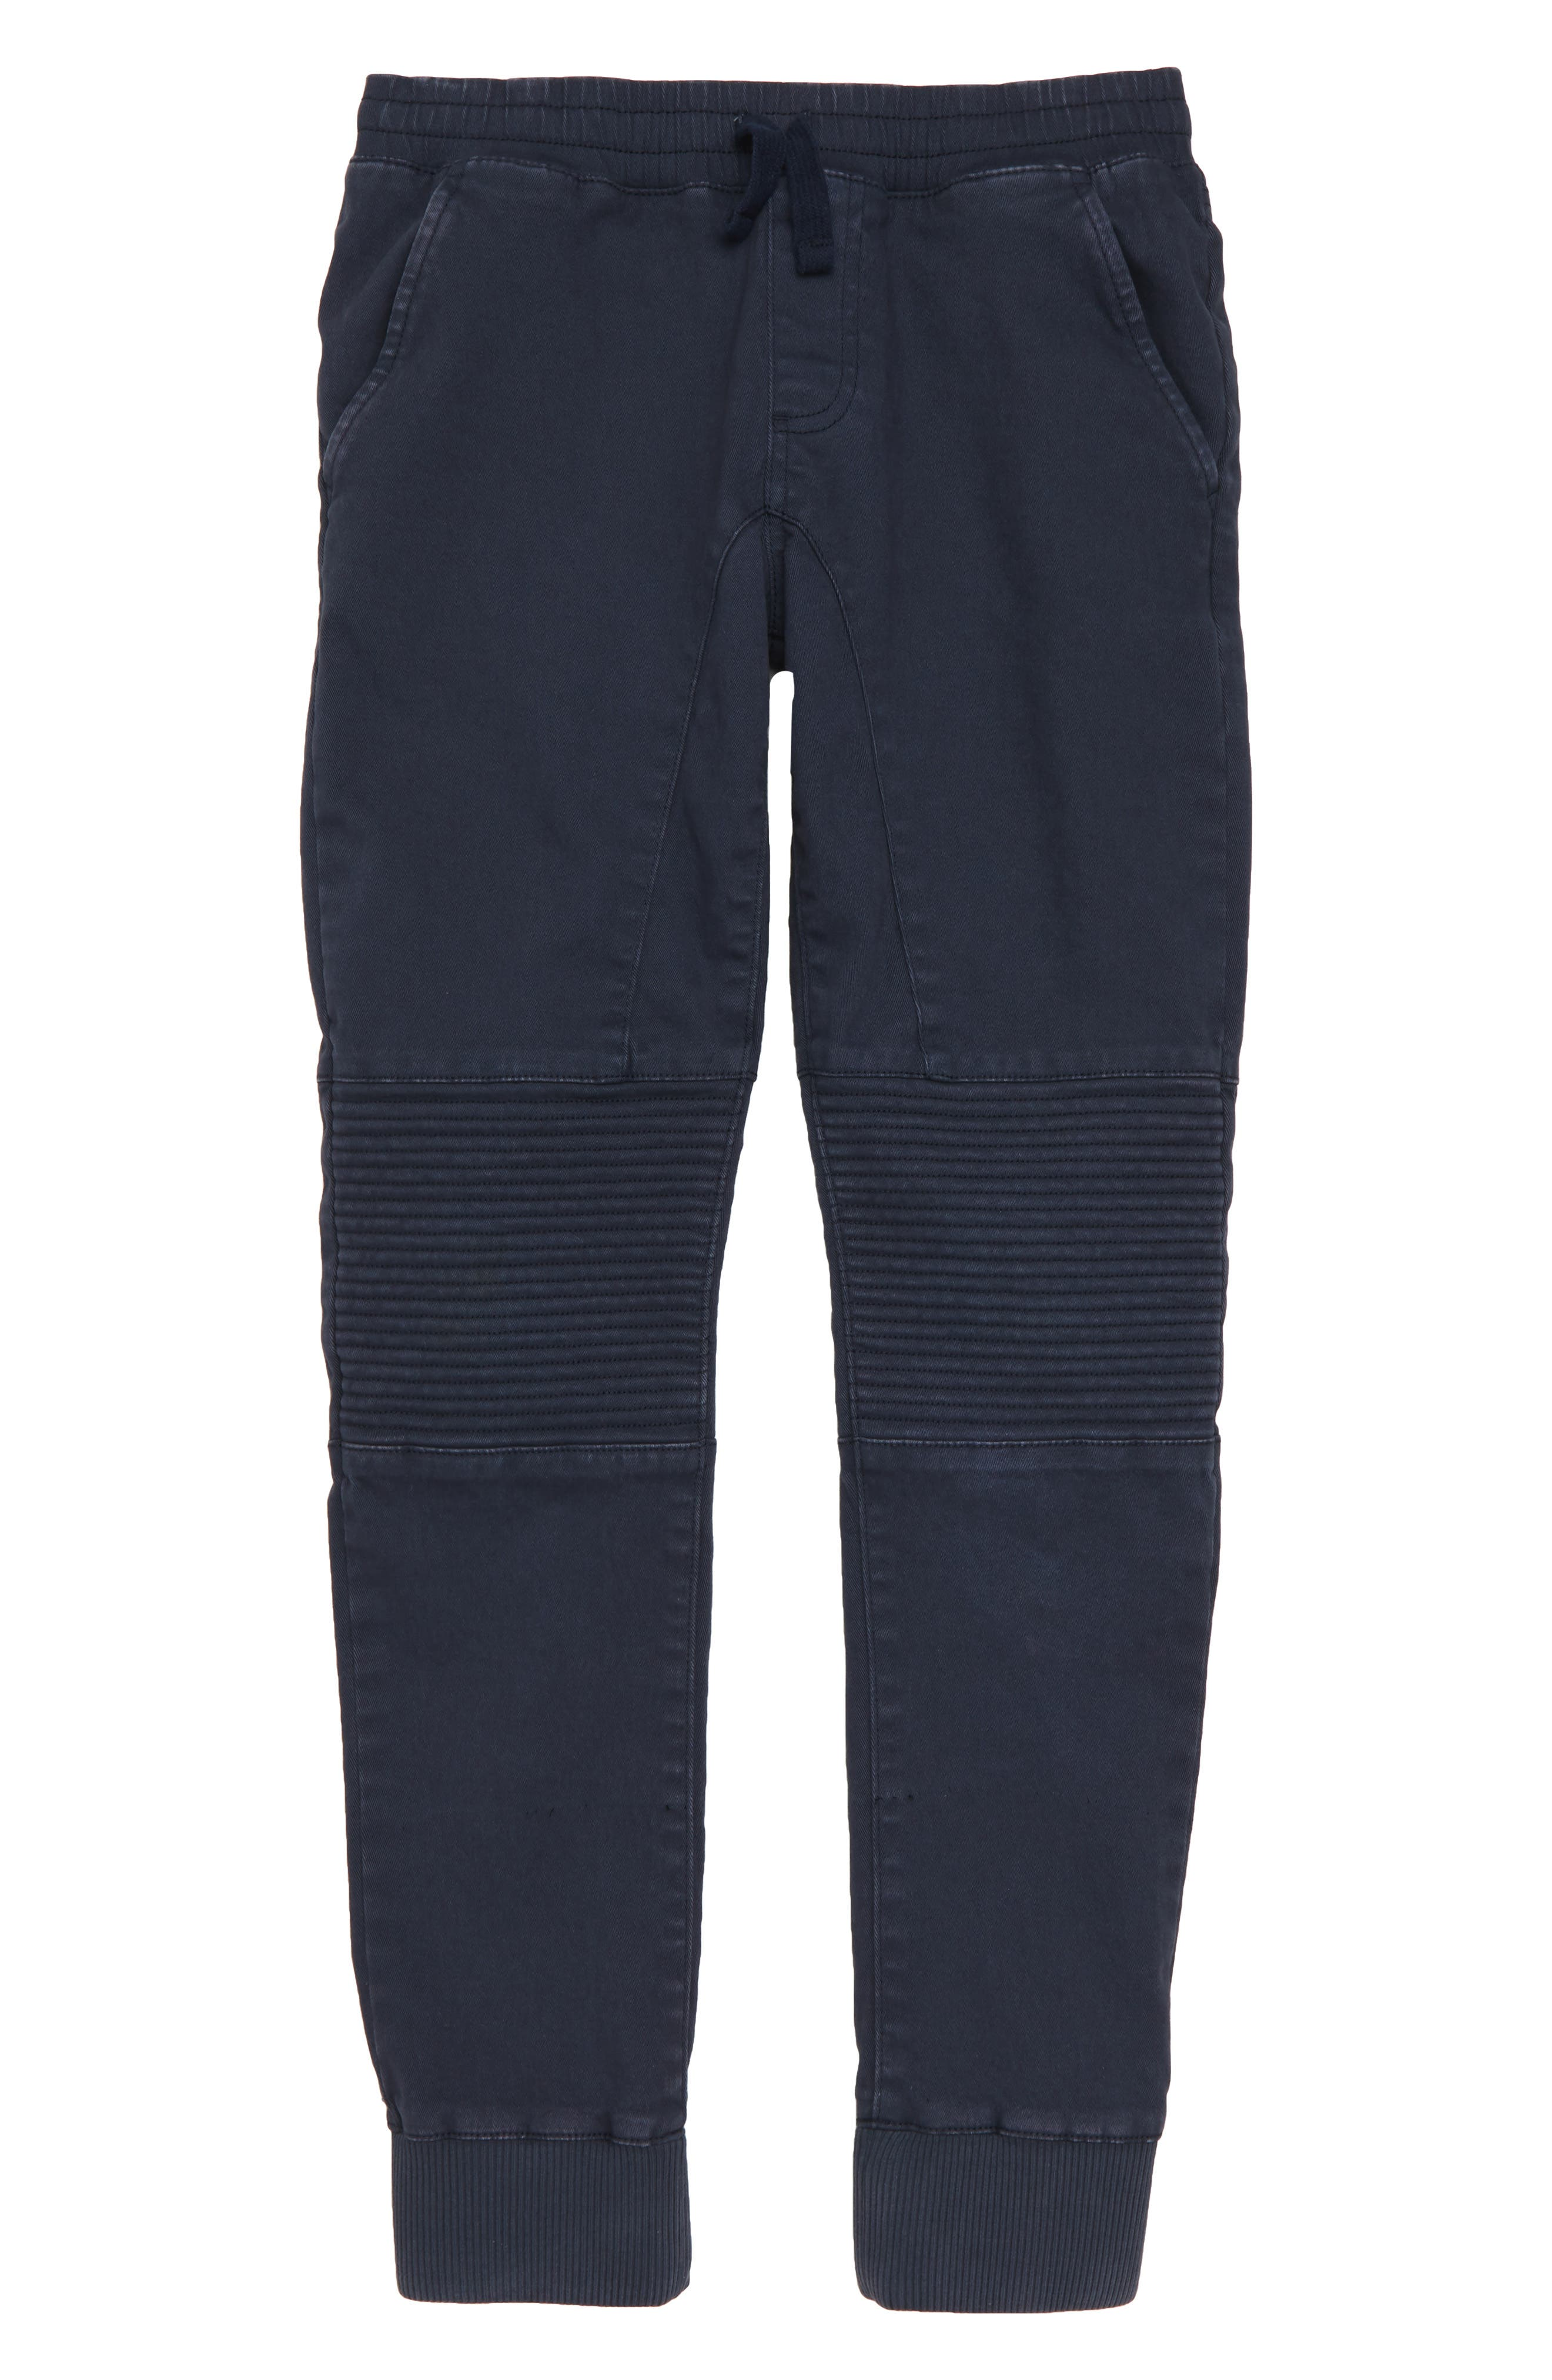 Moto Jogger Pants,                             Main thumbnail 1, color,                             NAVY INDIA INK